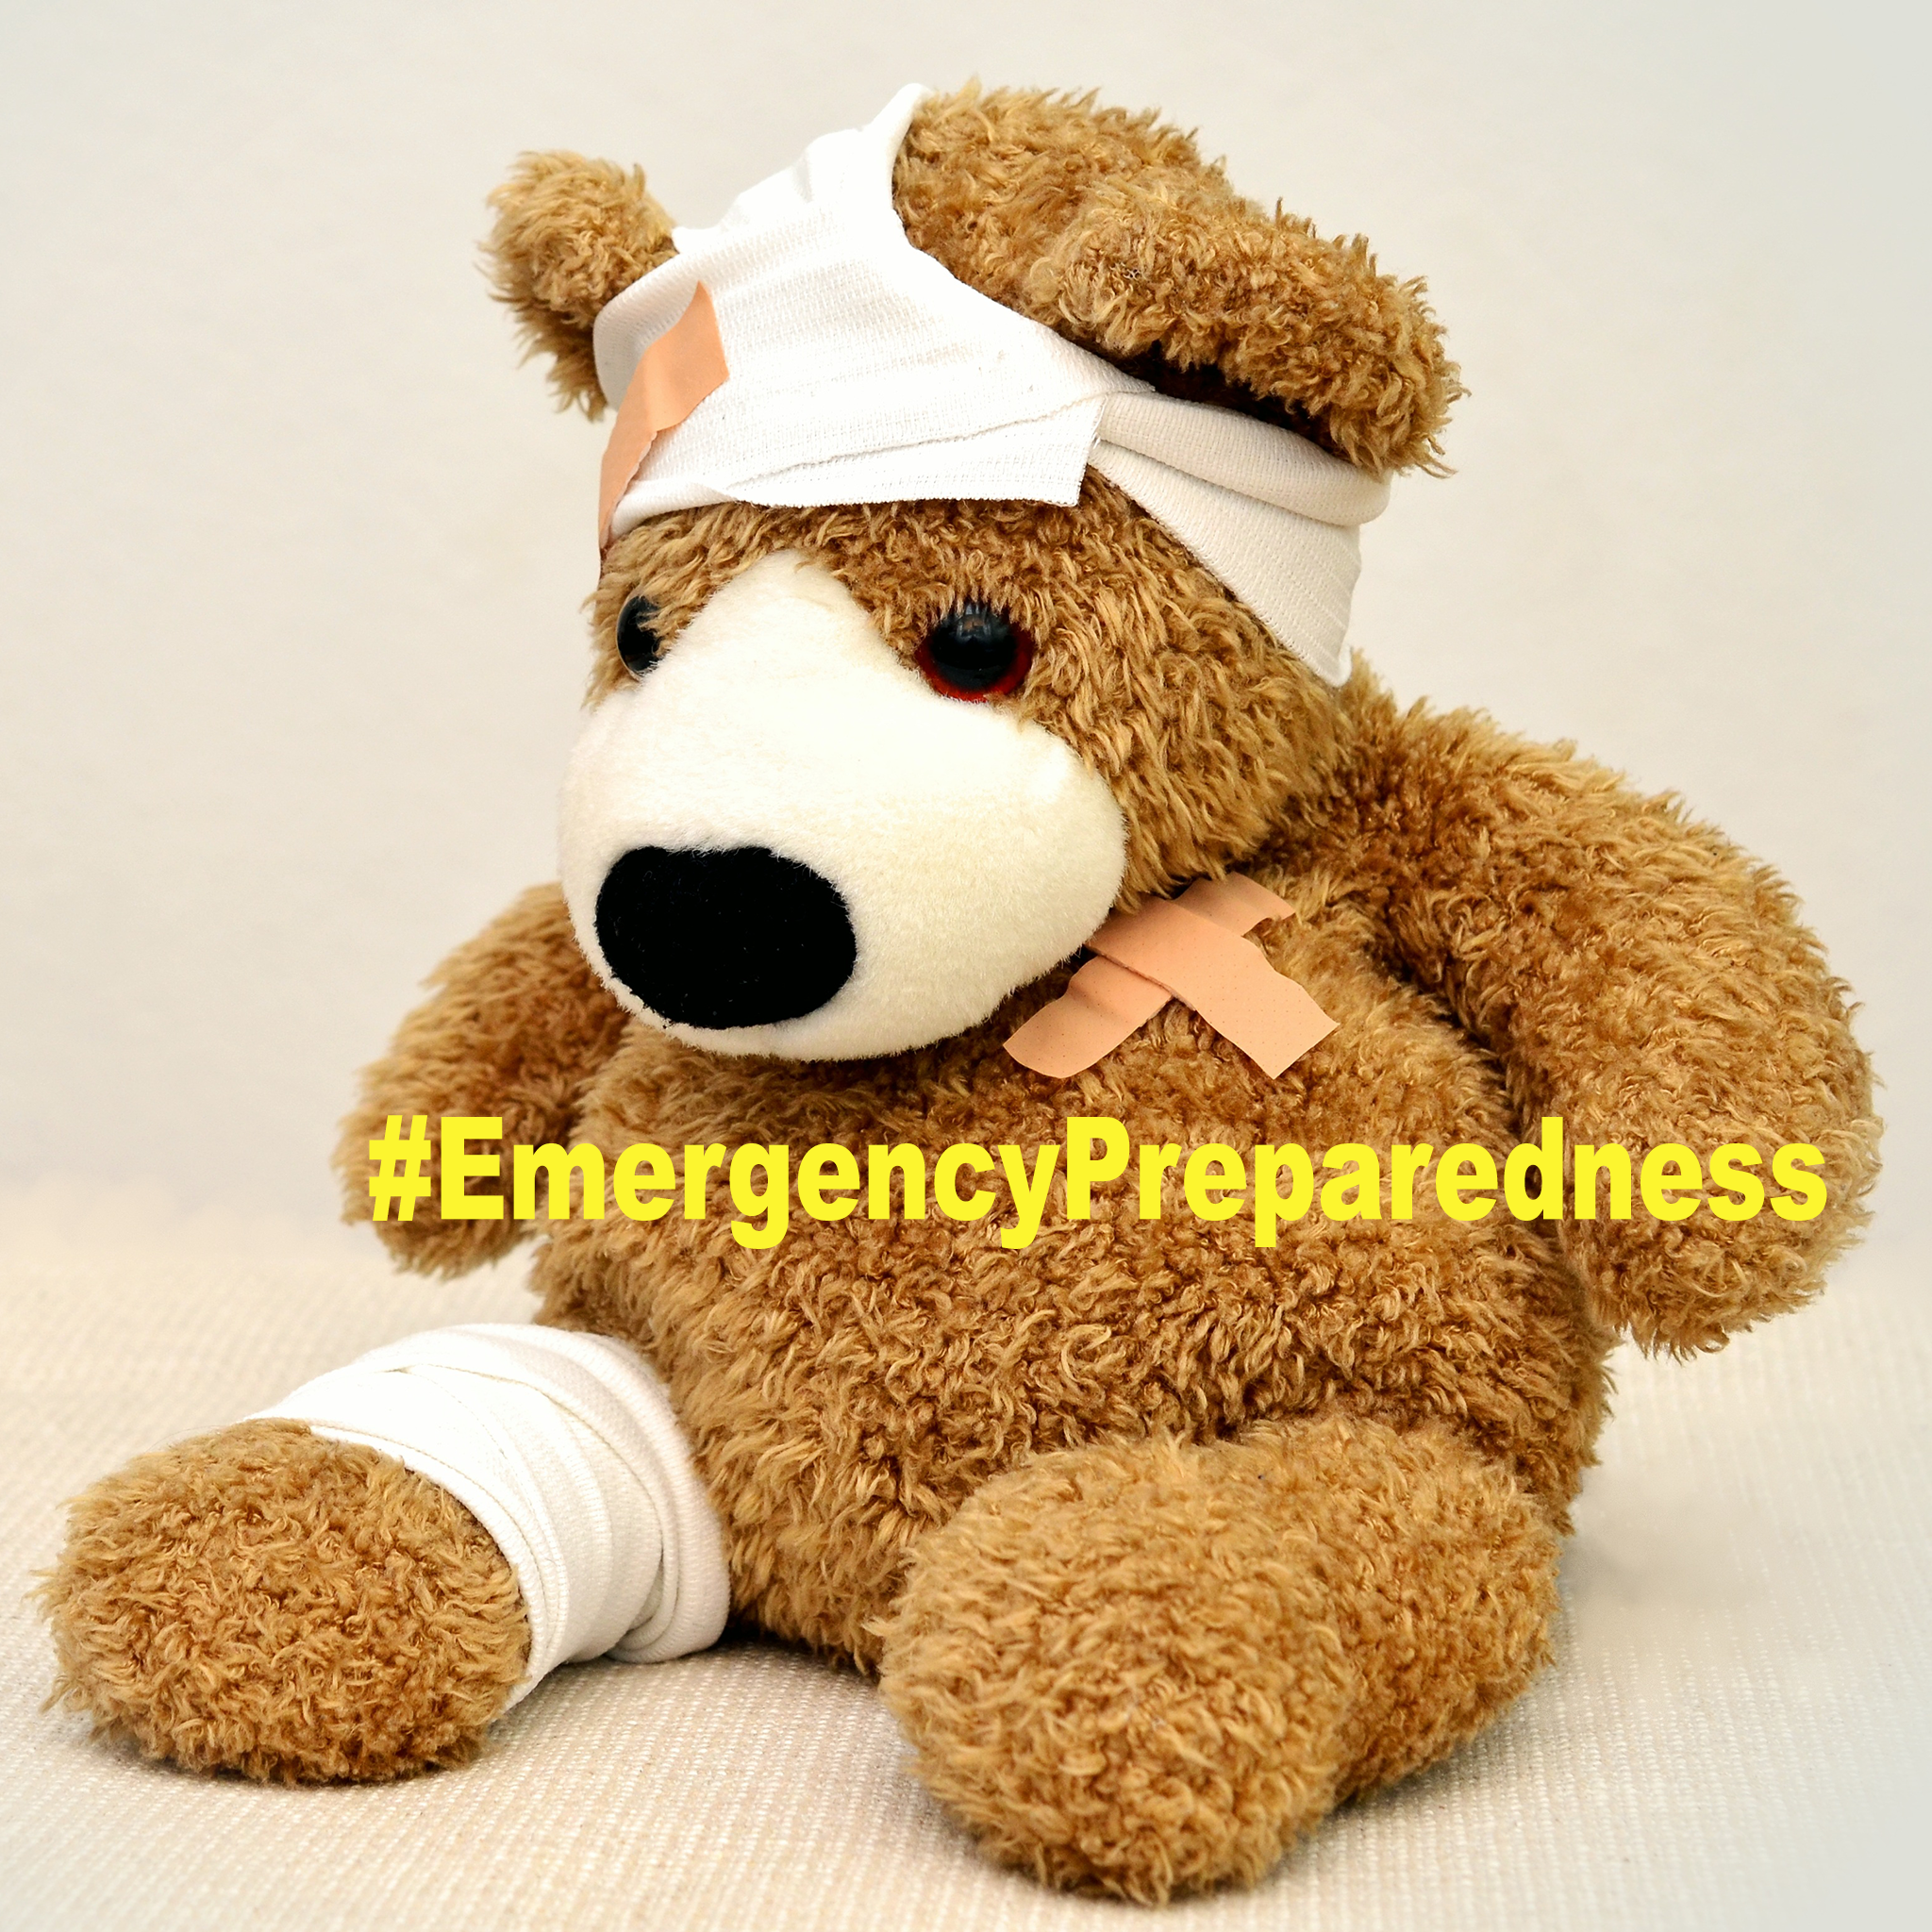 teddy-bear-emergency-prepardness-kit-emergencypreparedness-okstatewide405